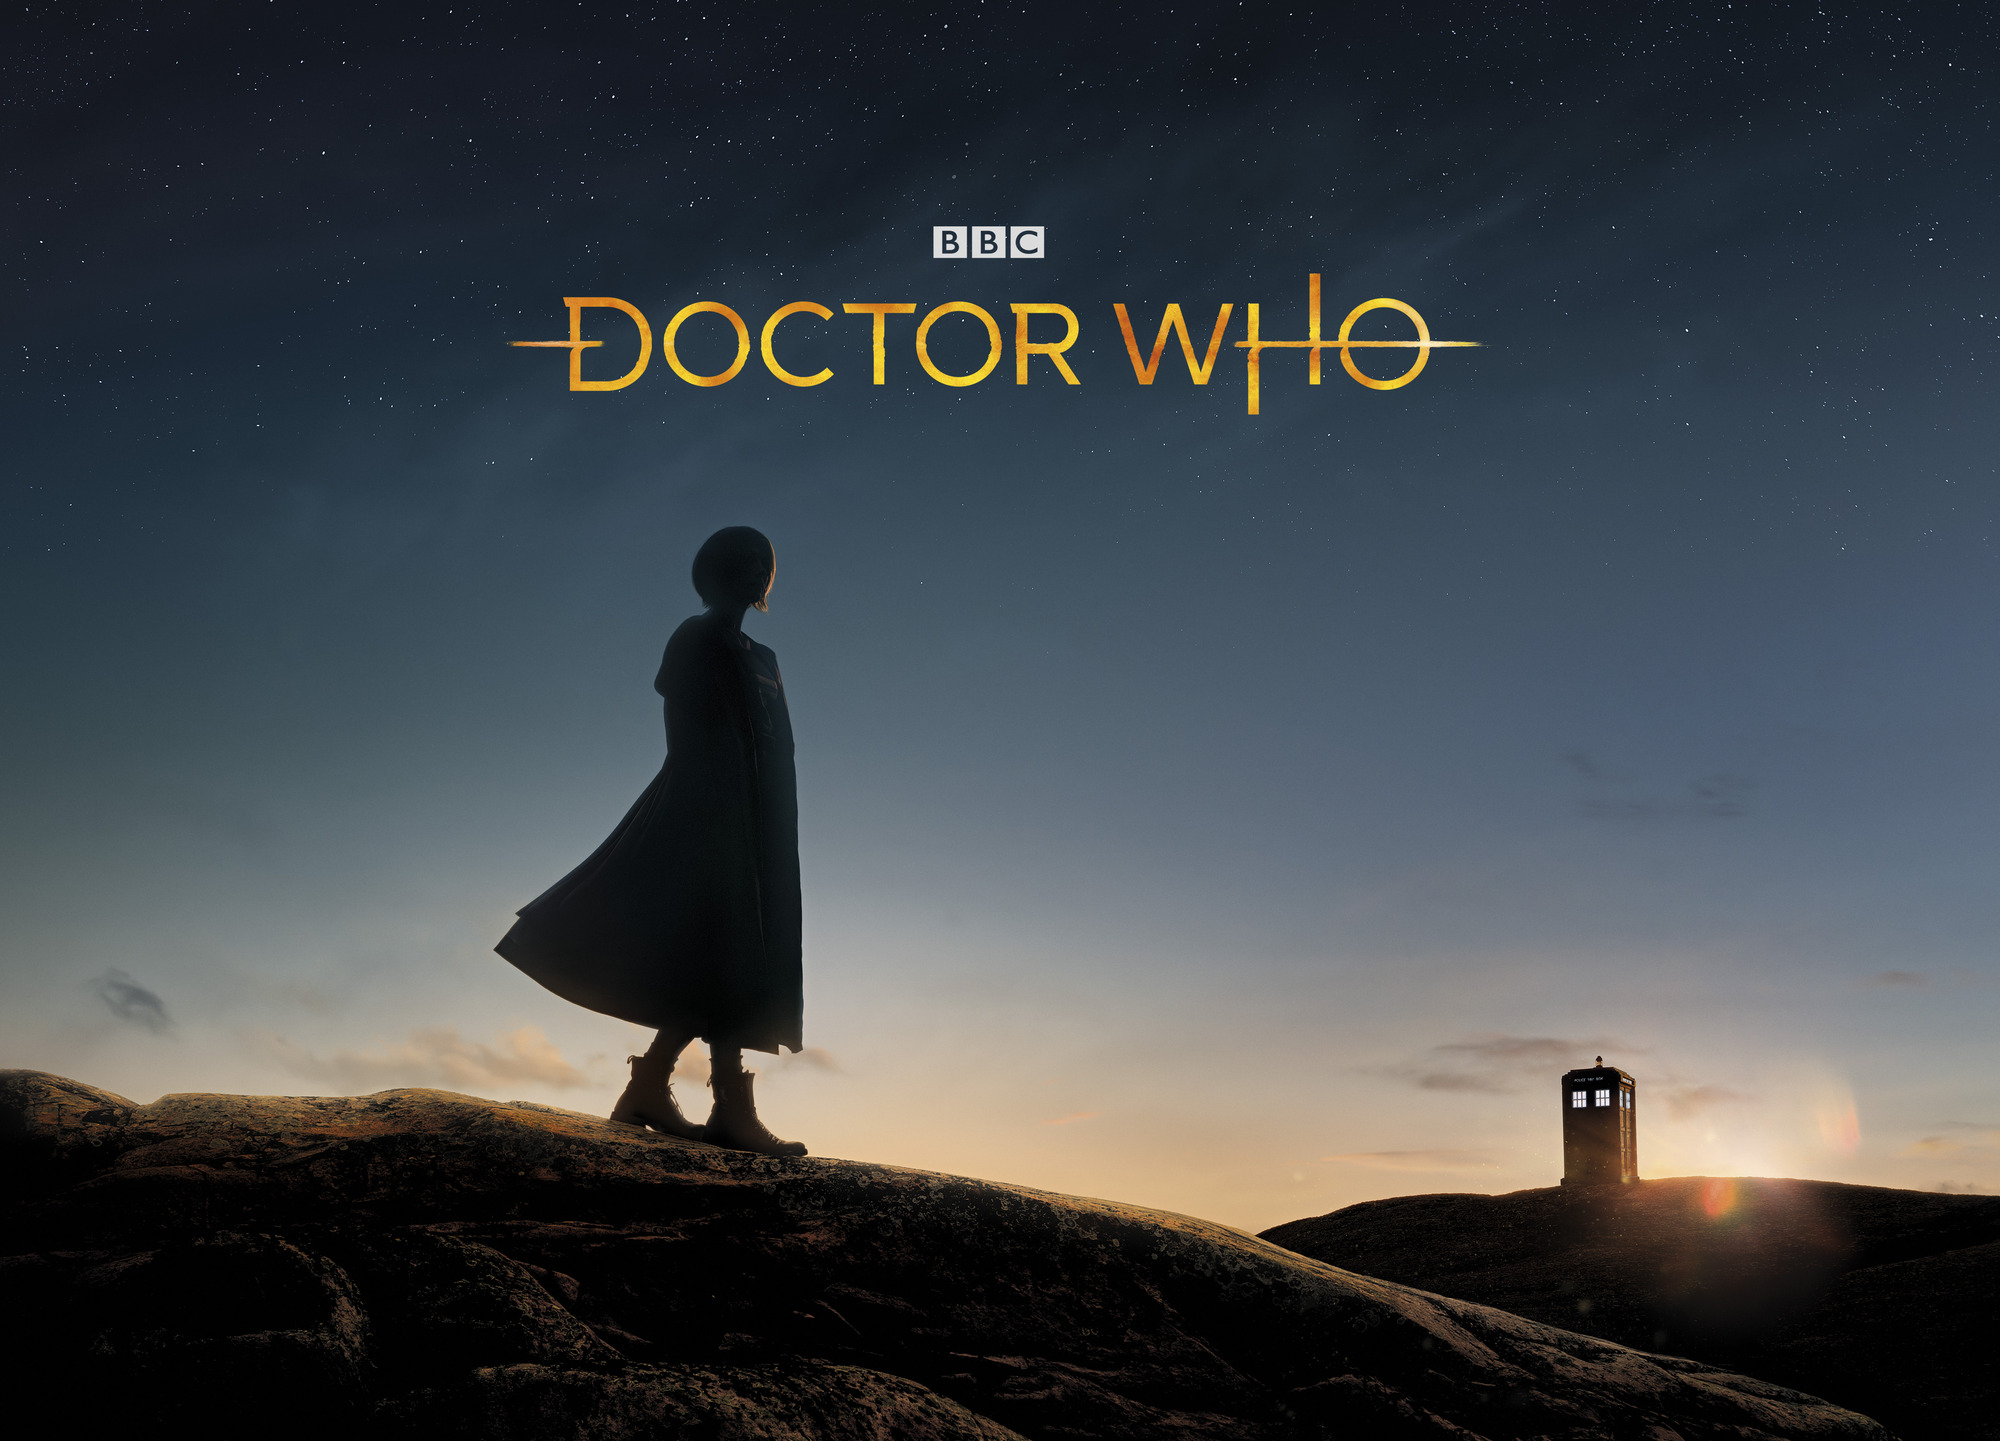 Why it's important that Doctor Who has more female writers